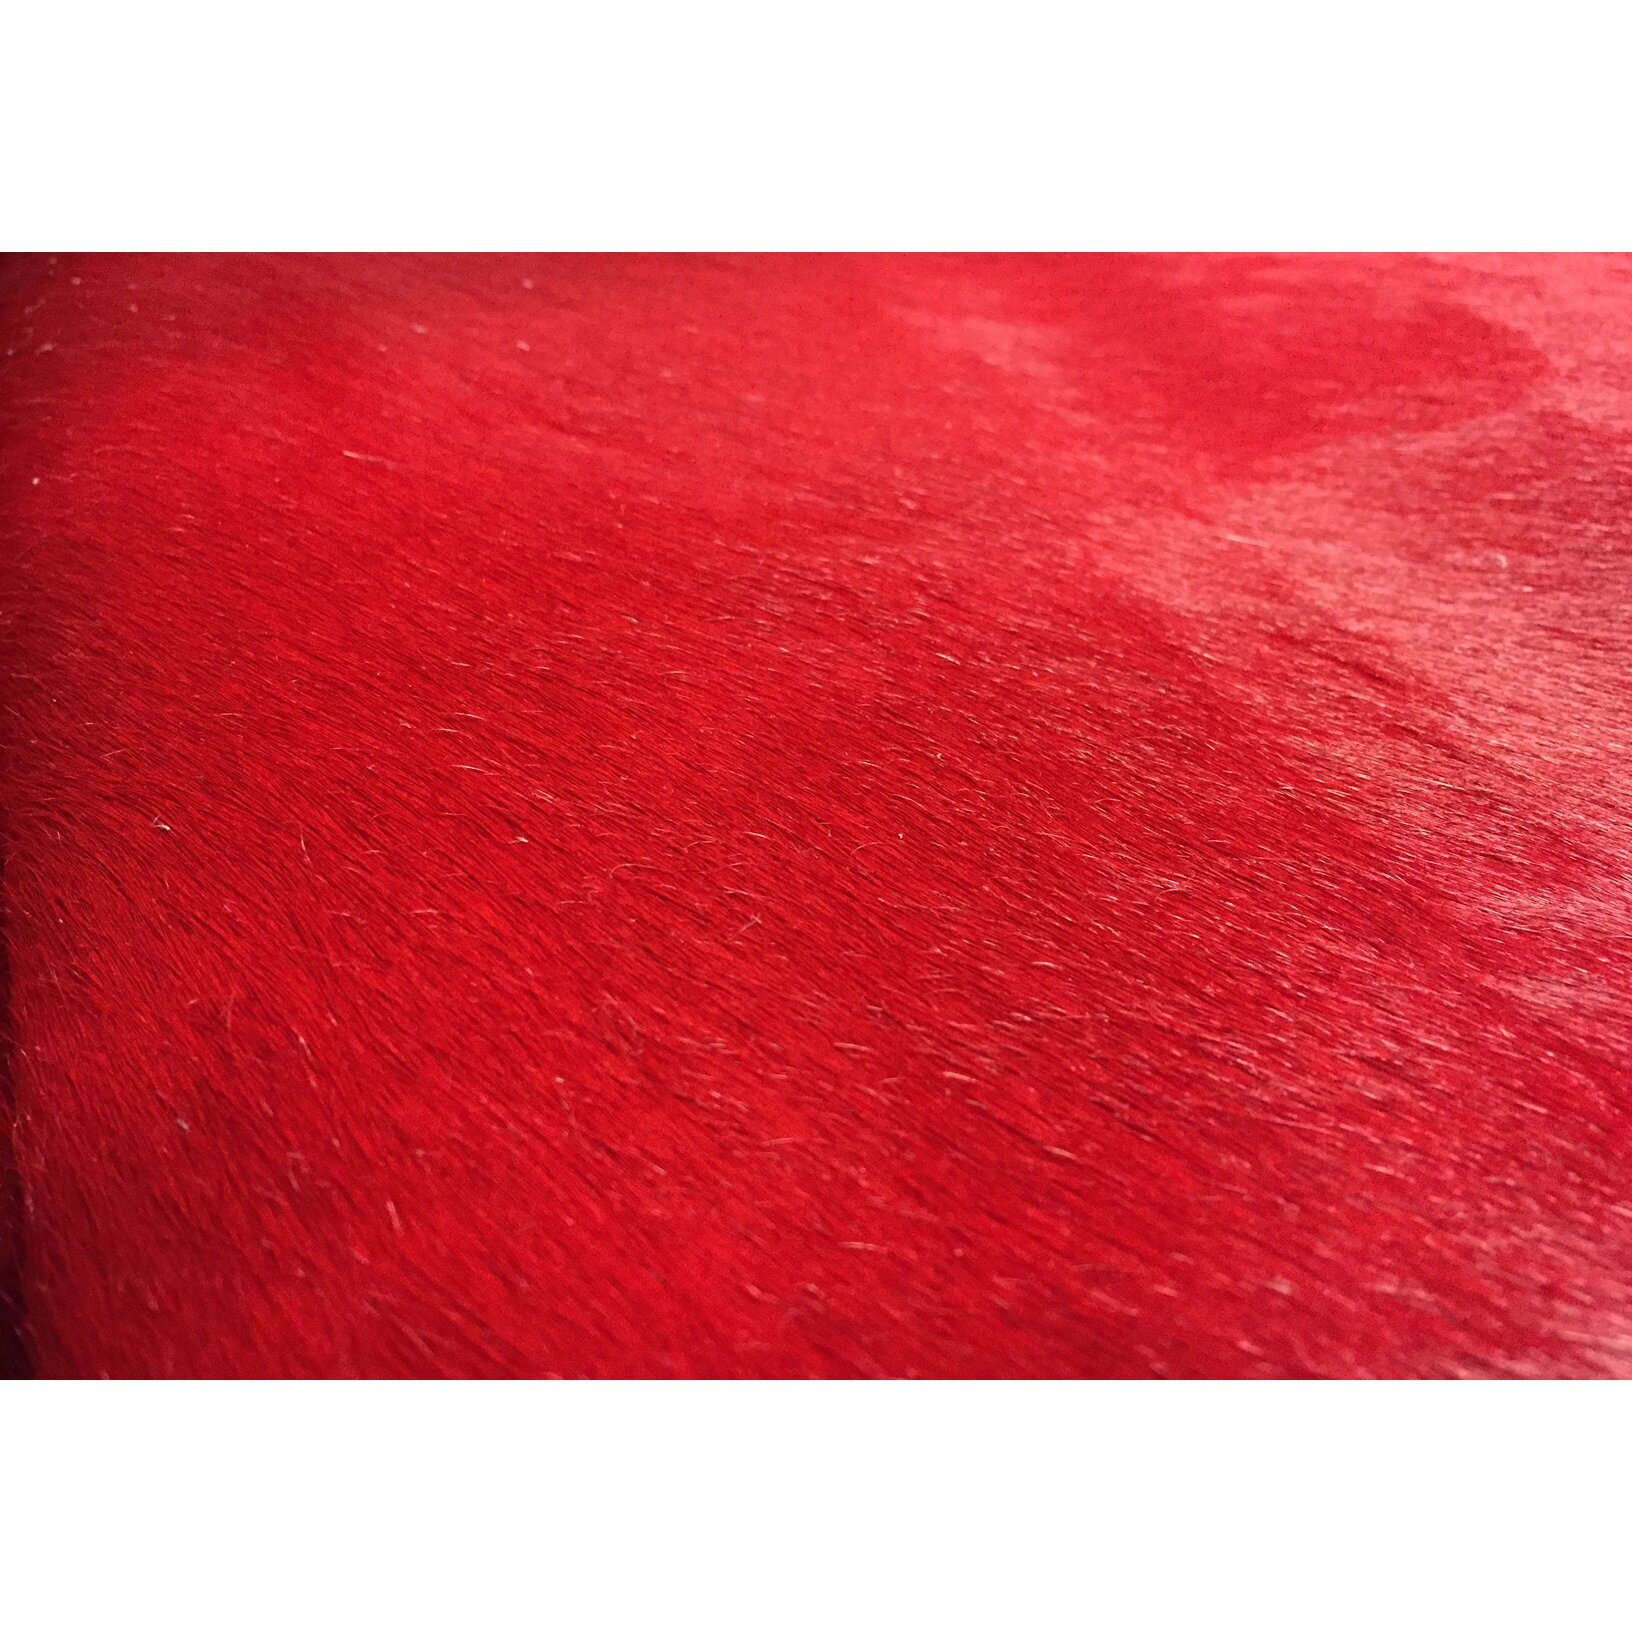 Chesterfield leather extra large dyed brazilian cowhide for Large red area rugs